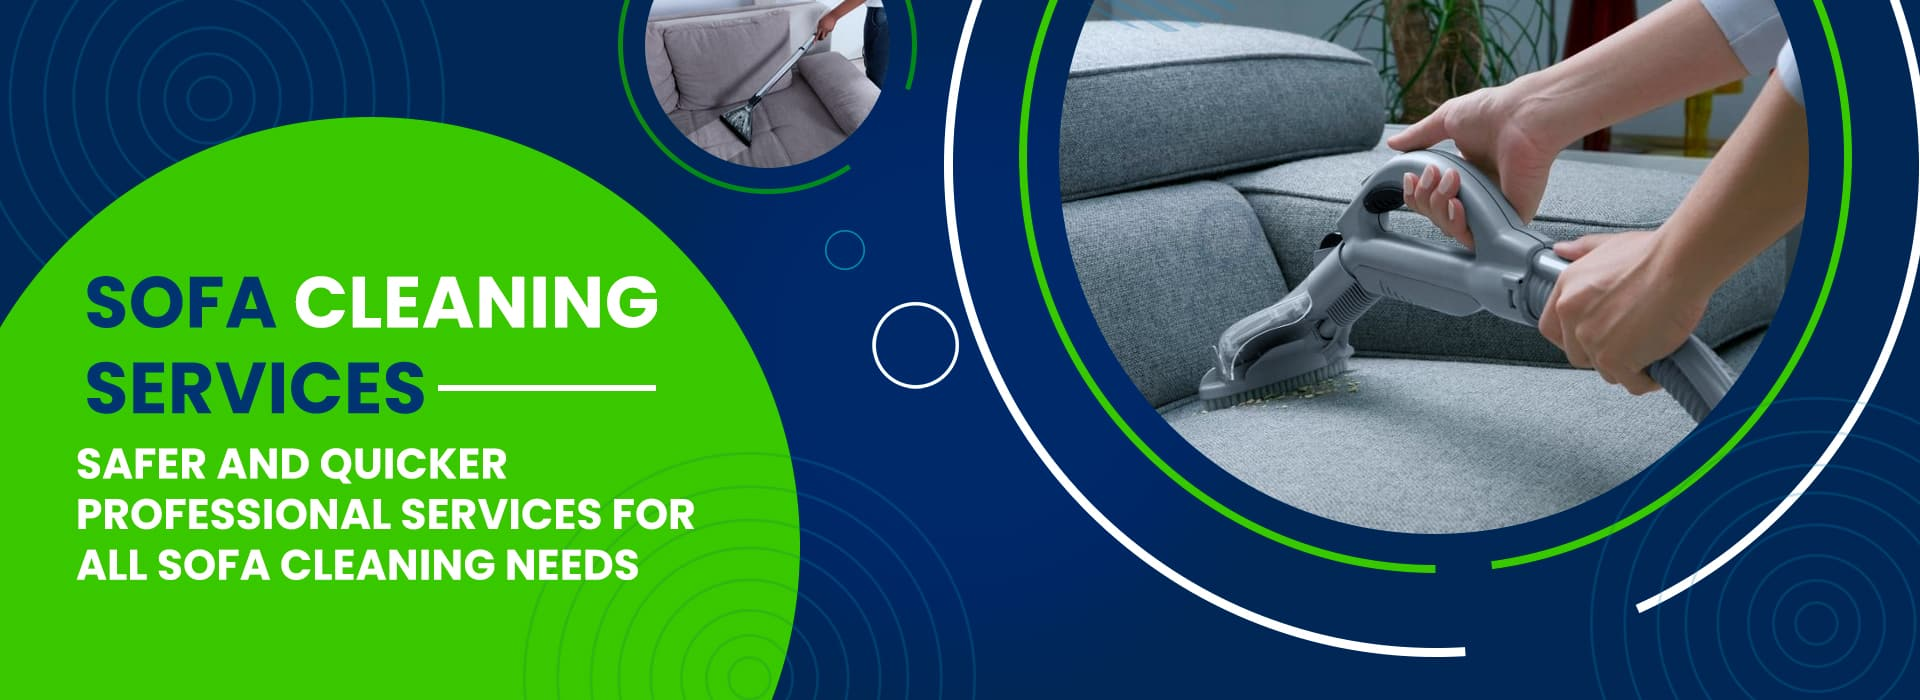 Sofa Cleaning Service In Melbourne